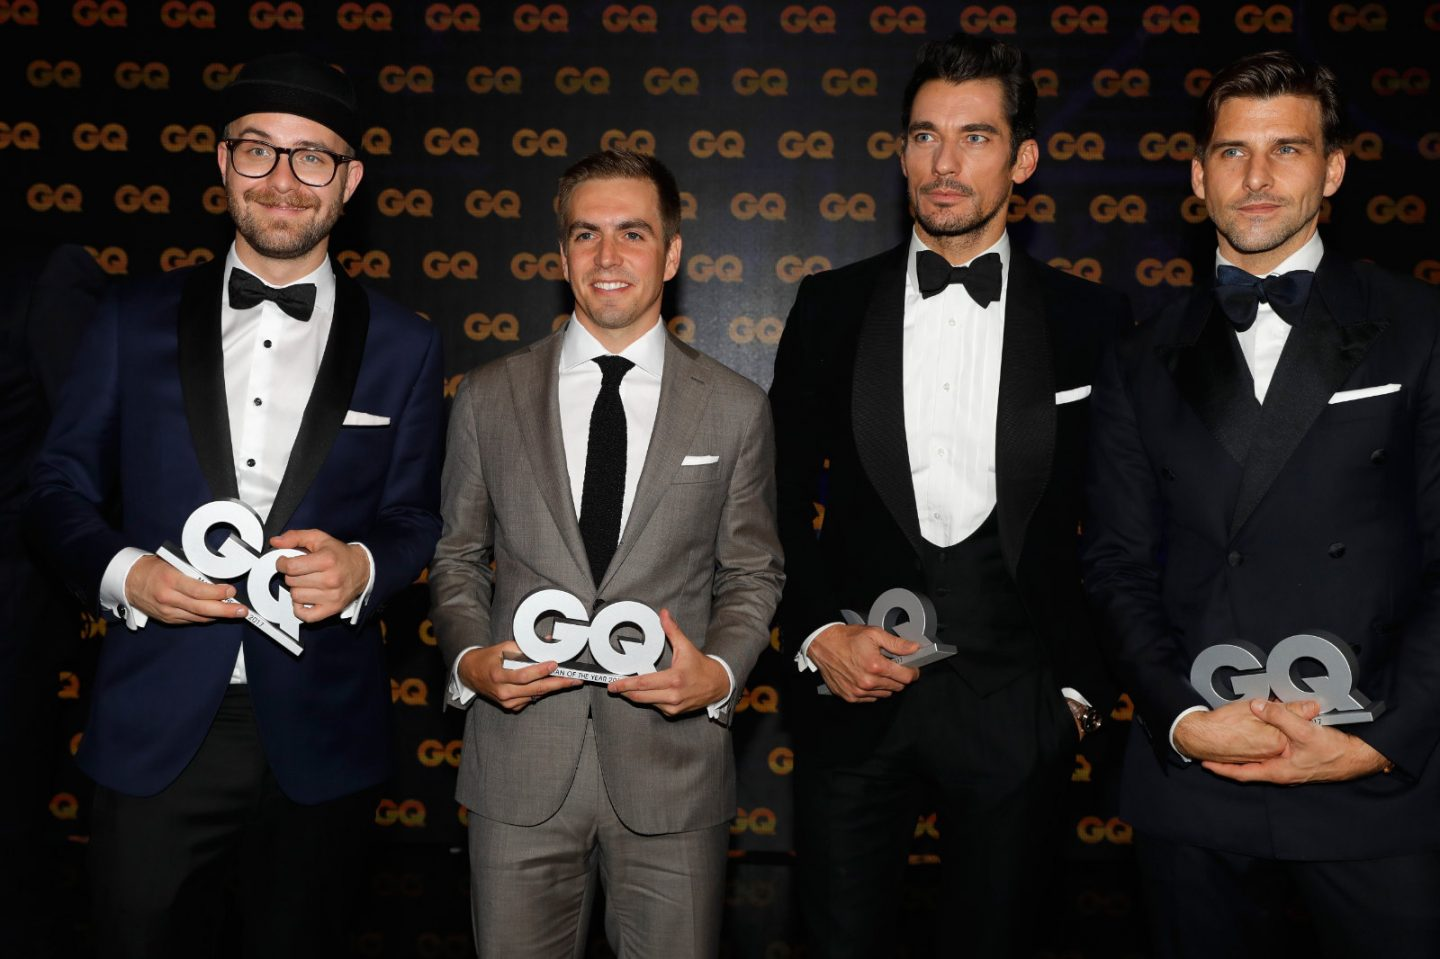 David Gandy, Thom Browne, Matthias Schweighöfer among honorees at <i>GQ Deutschland</i> Men of the Year awards